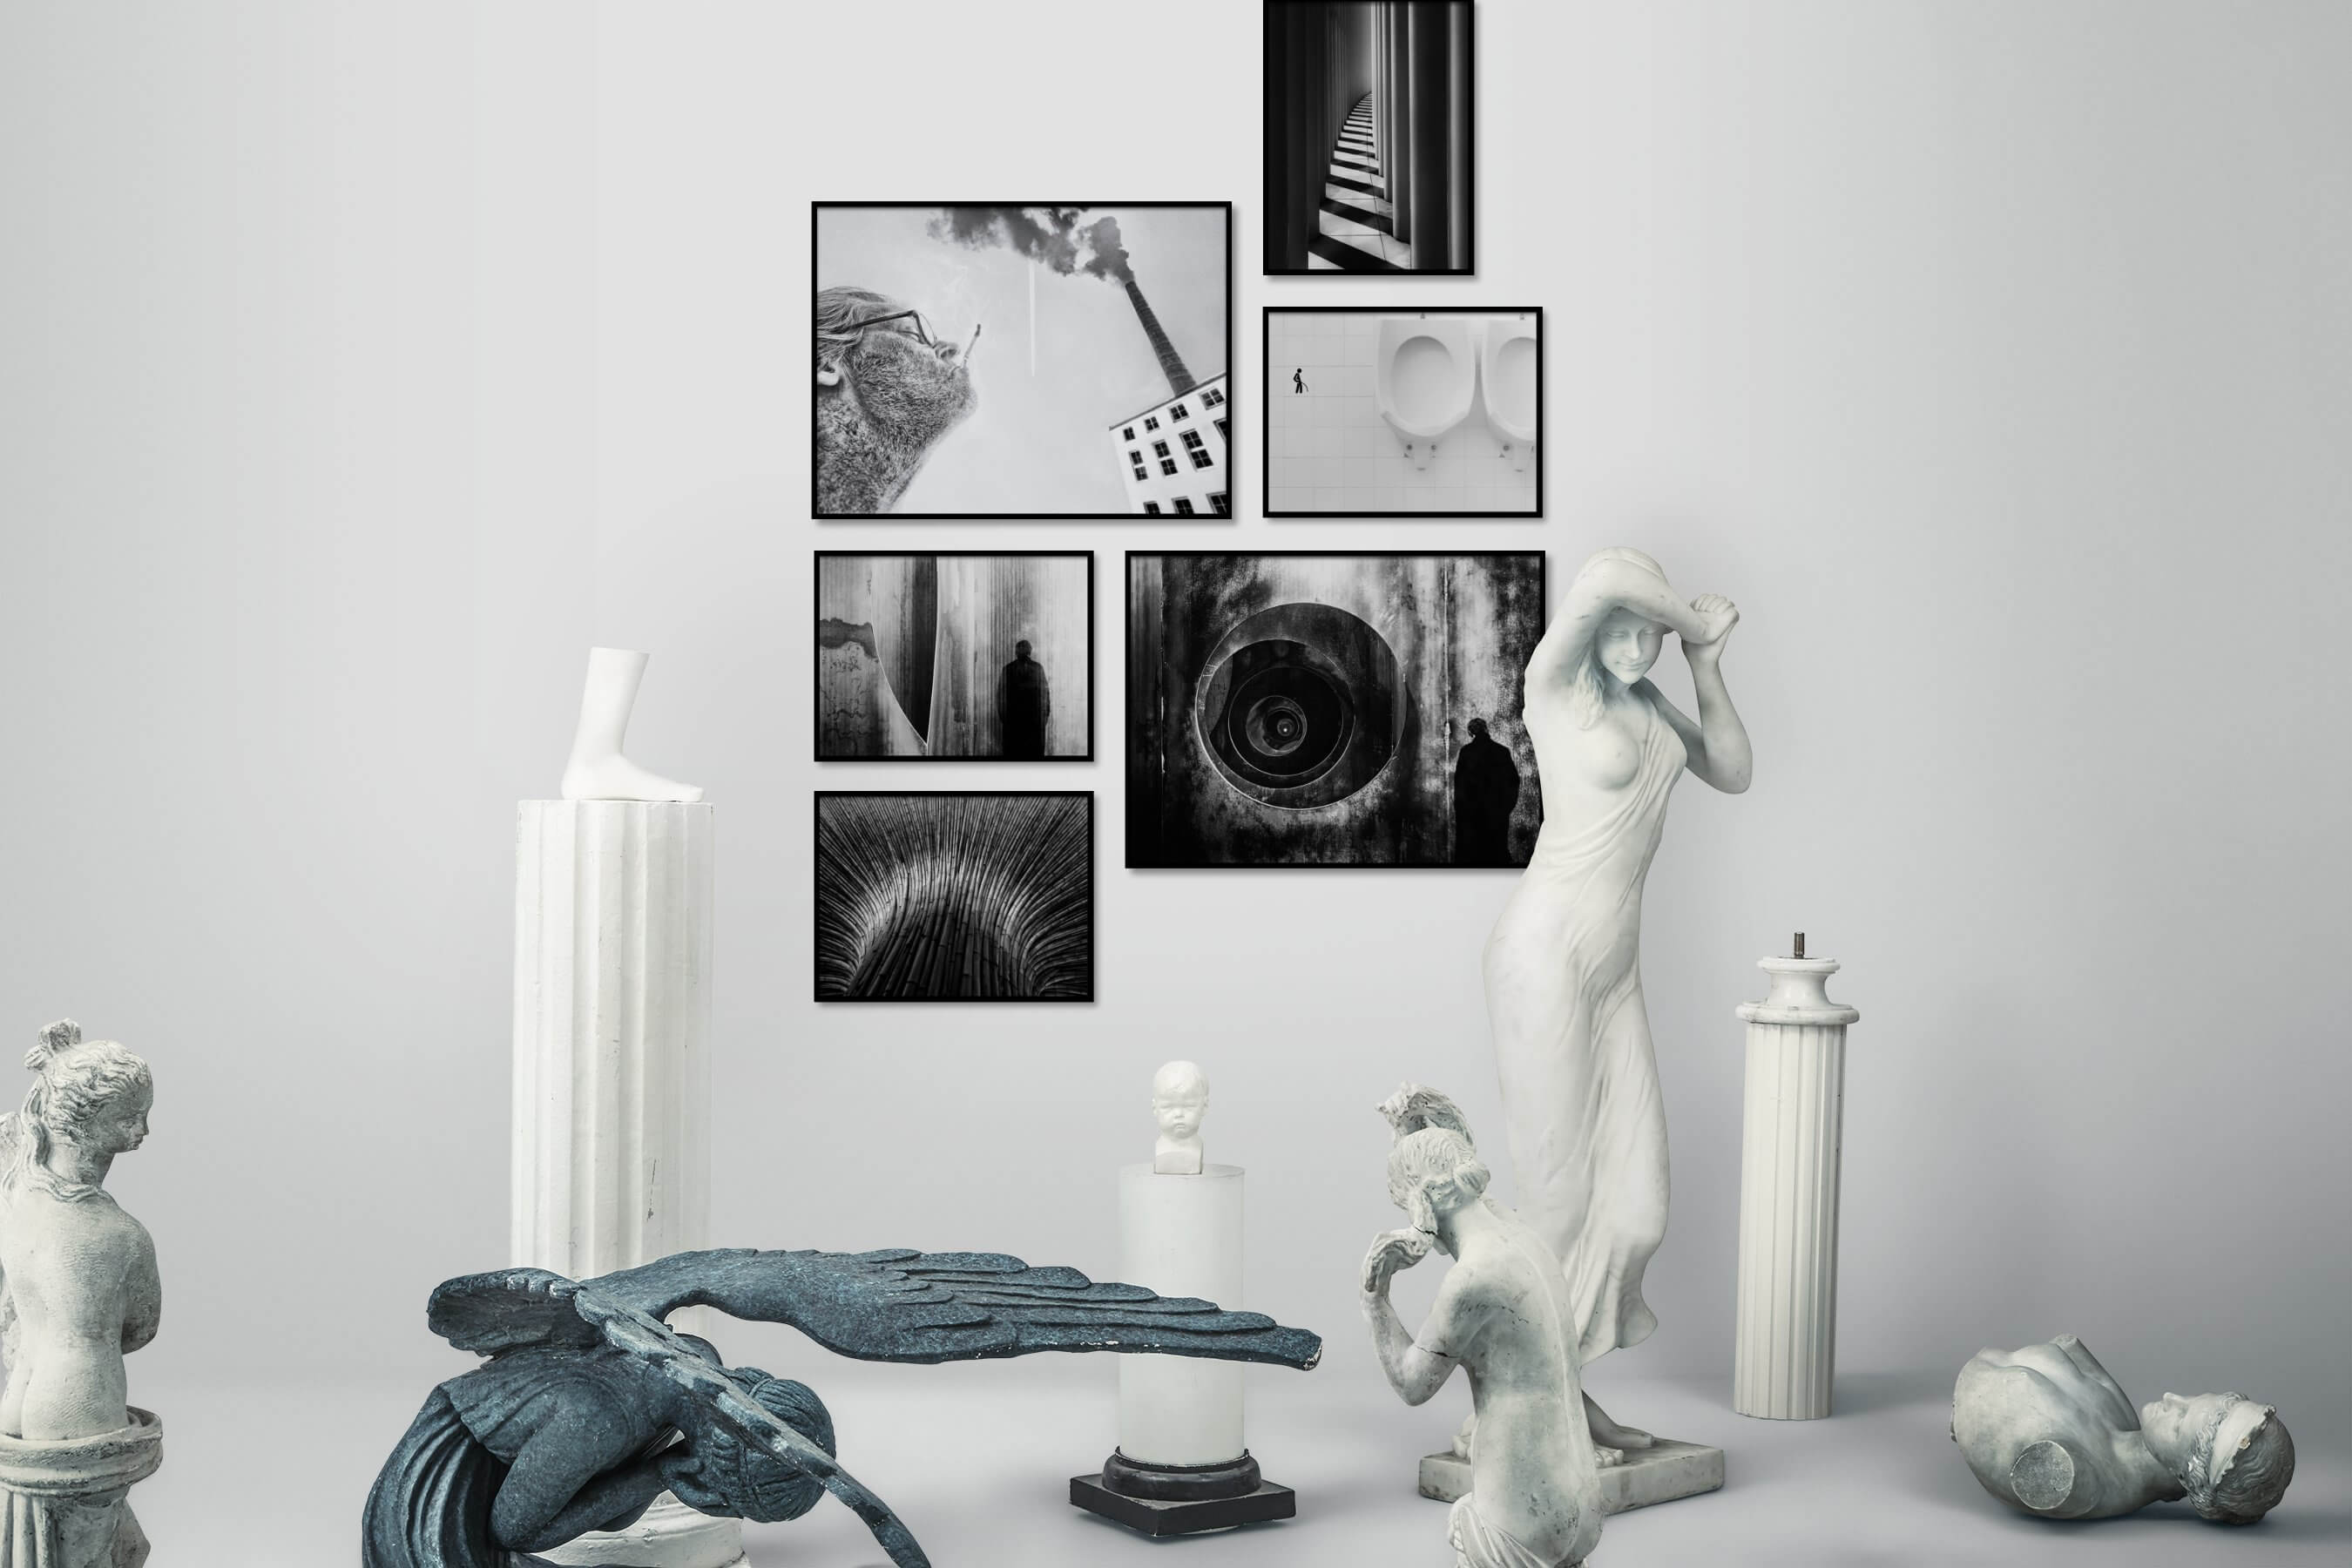 Gallery wall idea with six framed pictures arranged on a wall depicting Artsy, Black & White, For the Minimalist, For the Maximalist, Nature, and For the Moderate